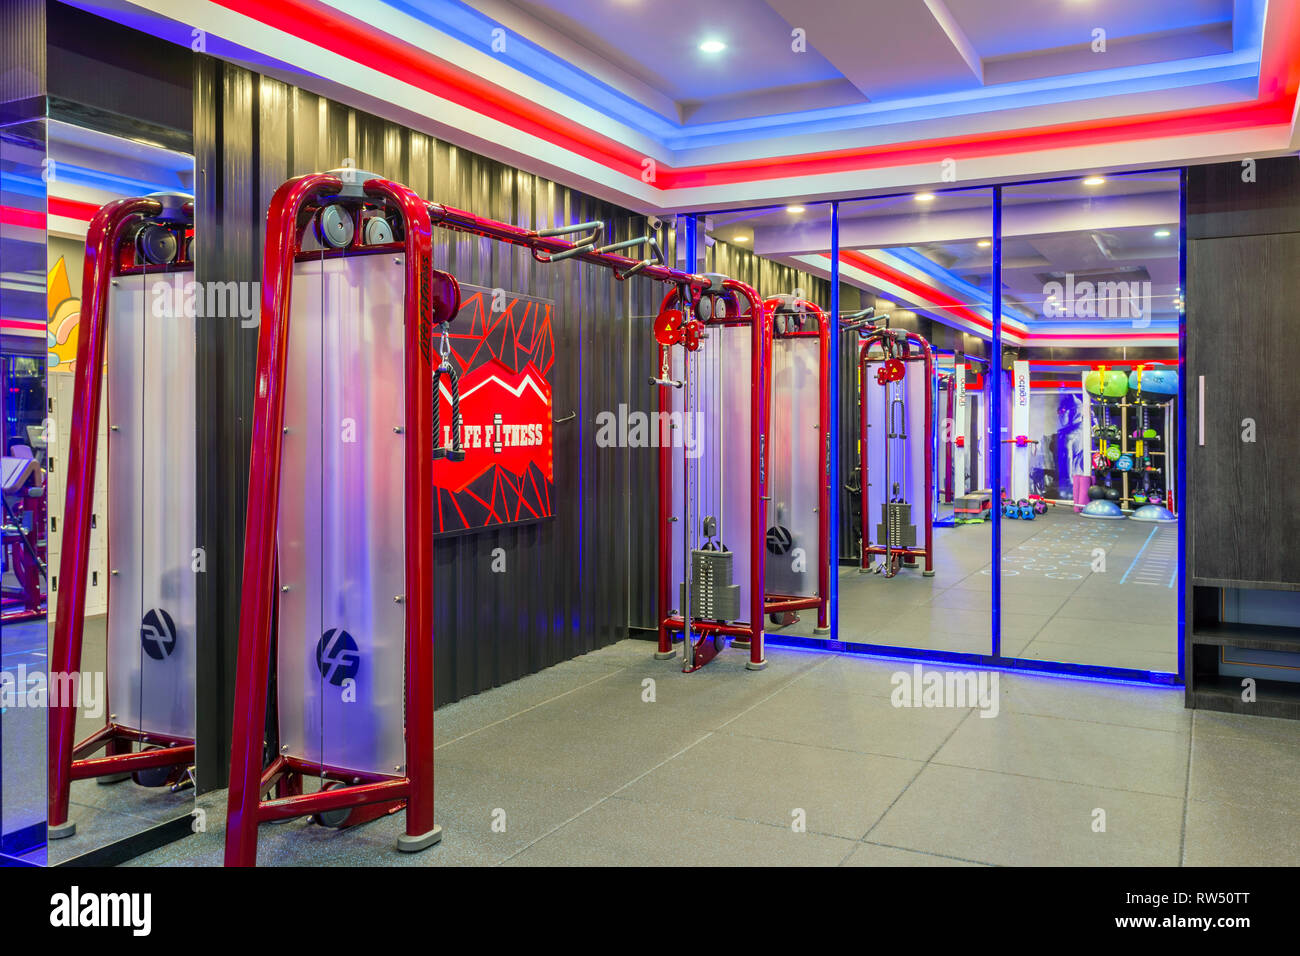 GM Life Fitness health club interior room filled with fitness equipment and exercise machine in Krabi, Thailand. - Stock Image